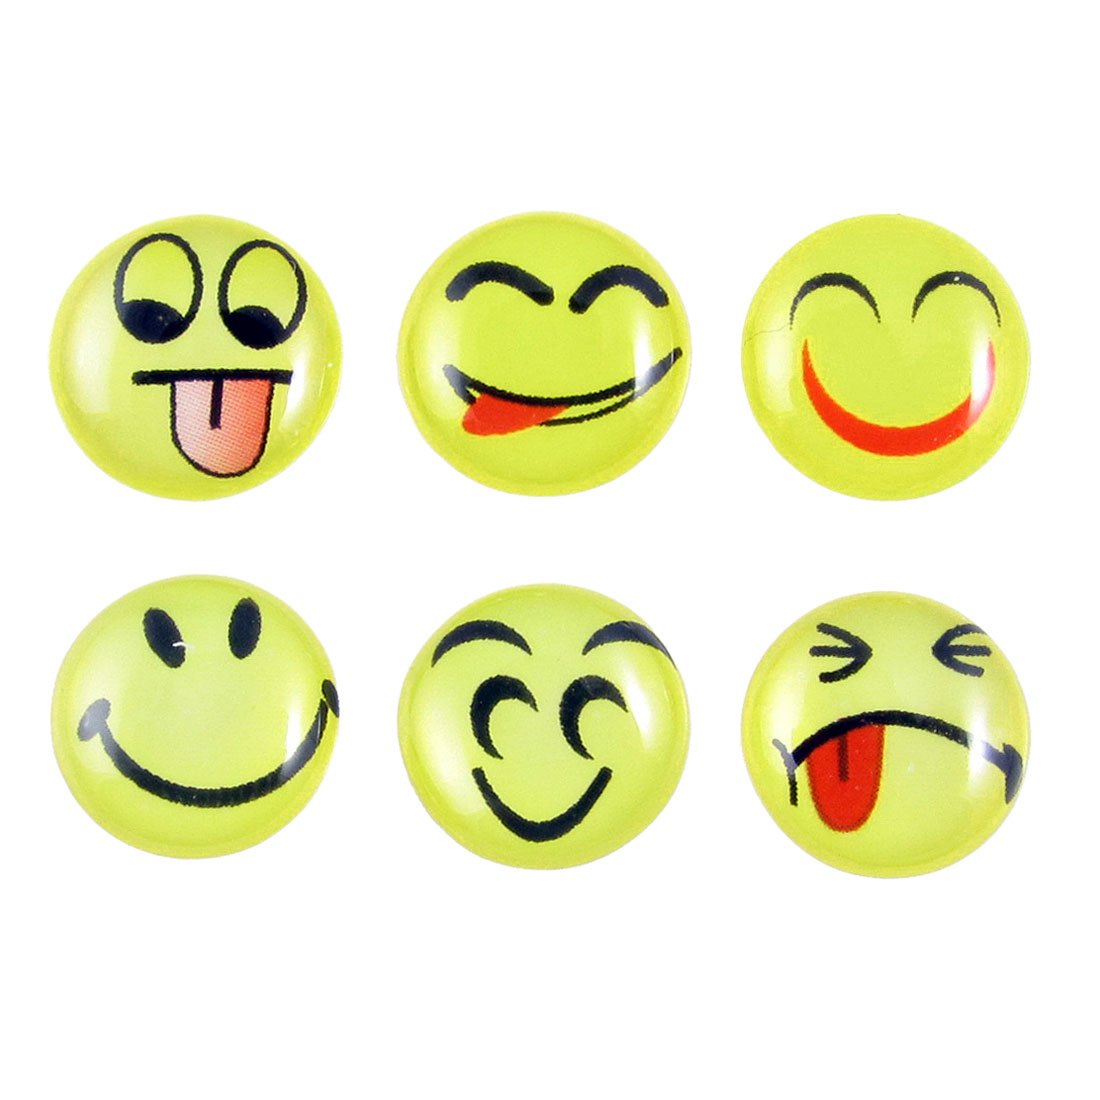 Smiling Face Home Button Stickers 6 in 1 for Cell Phone